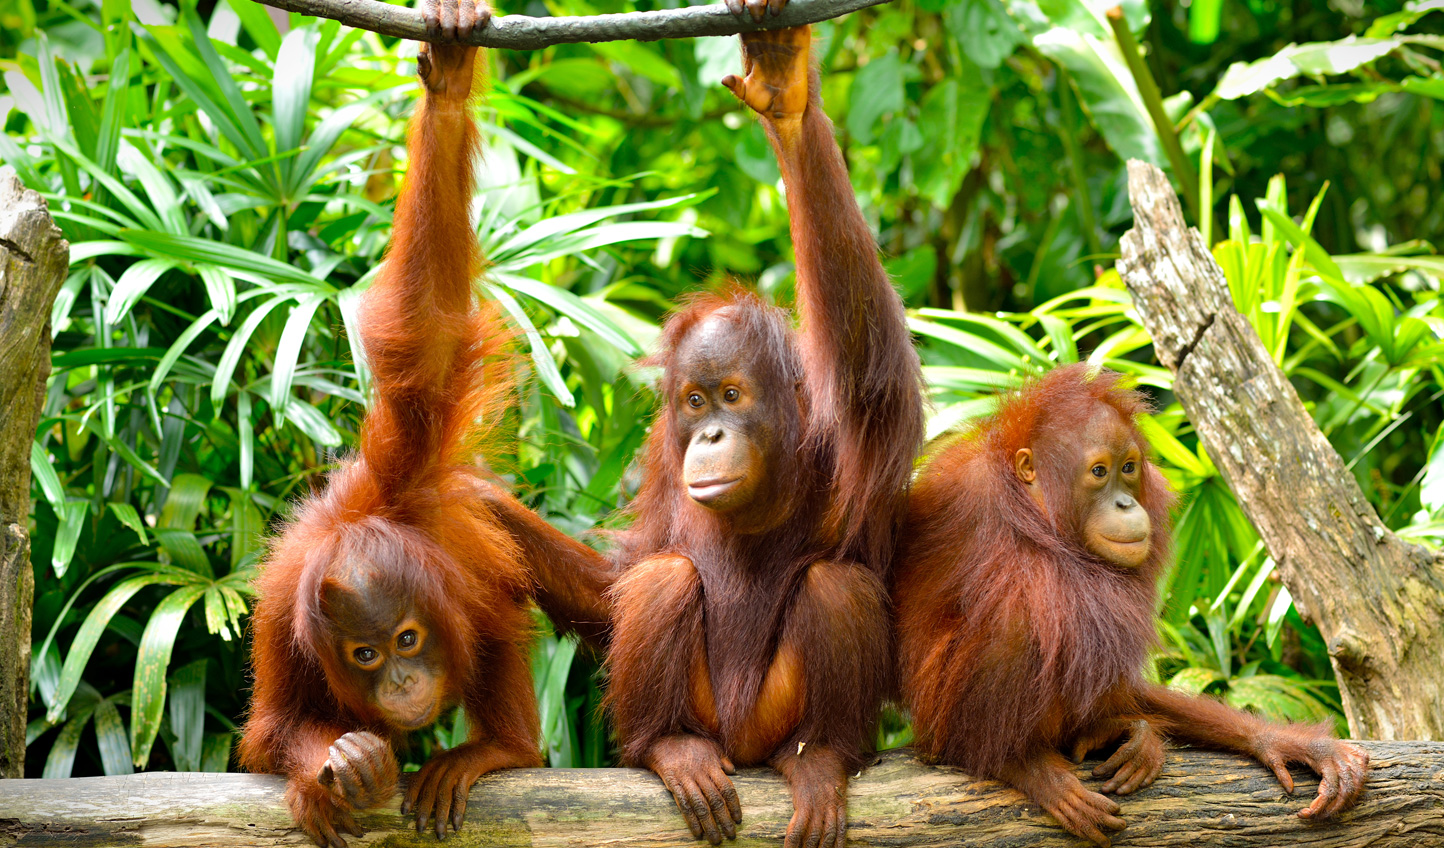 Encounter orangutans young...